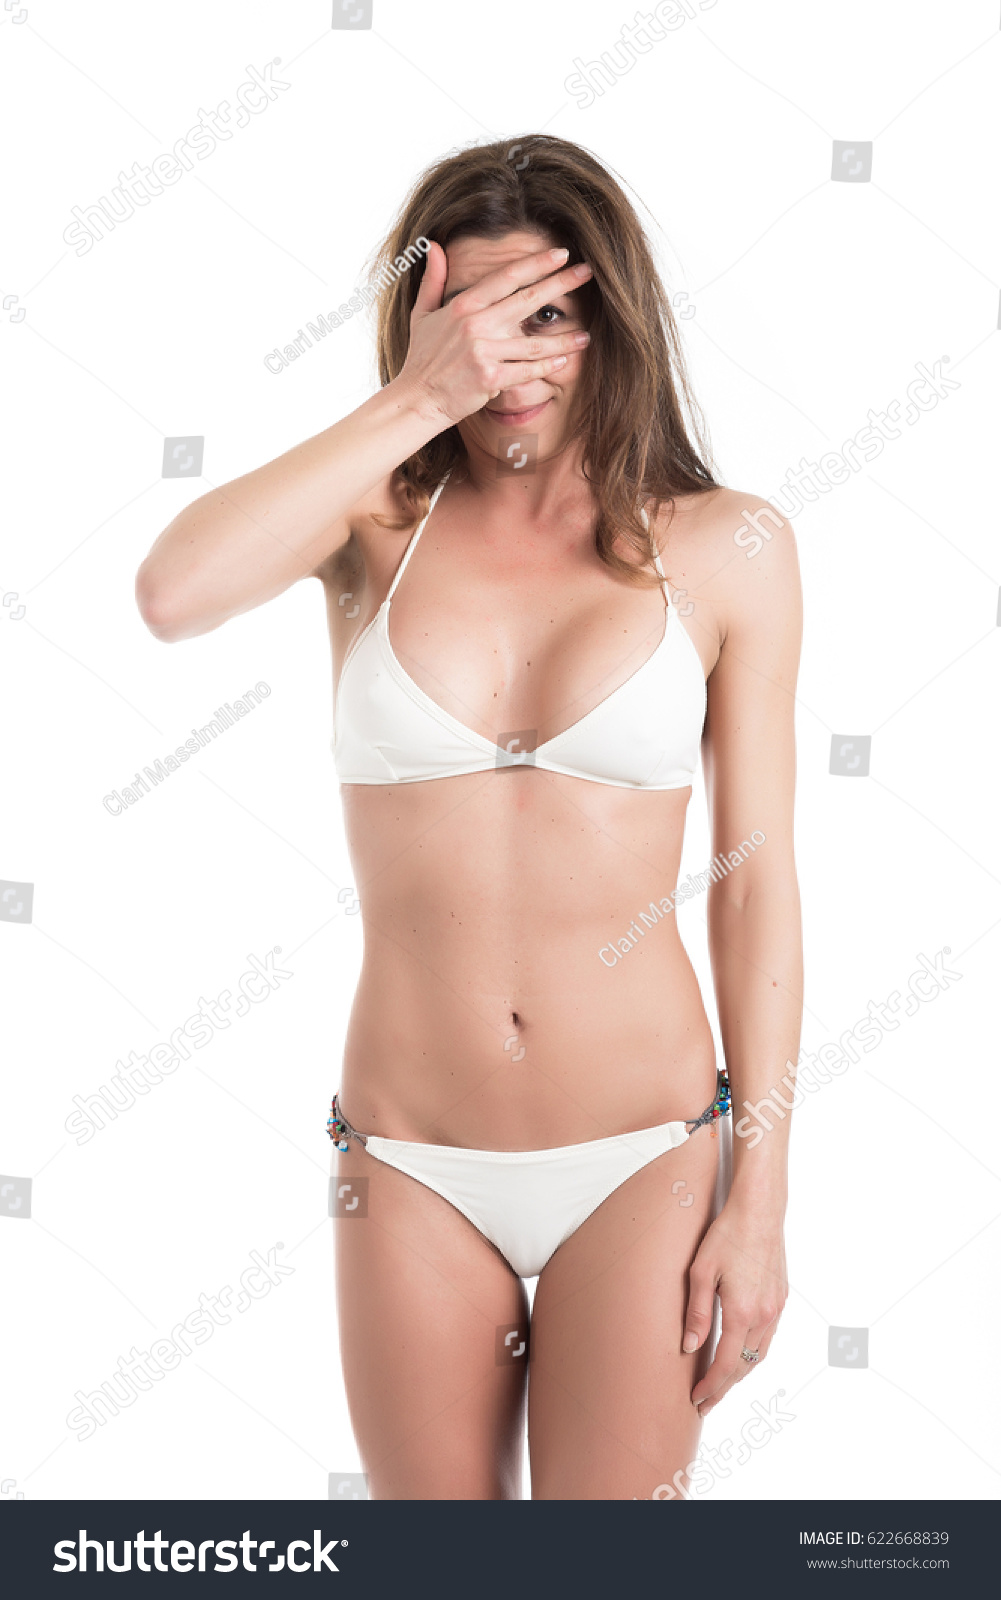 Background image scale to fit - Young Woman In White Bikini Near Scale Unhappy With Her Weight Gesturing Sadness Fit And